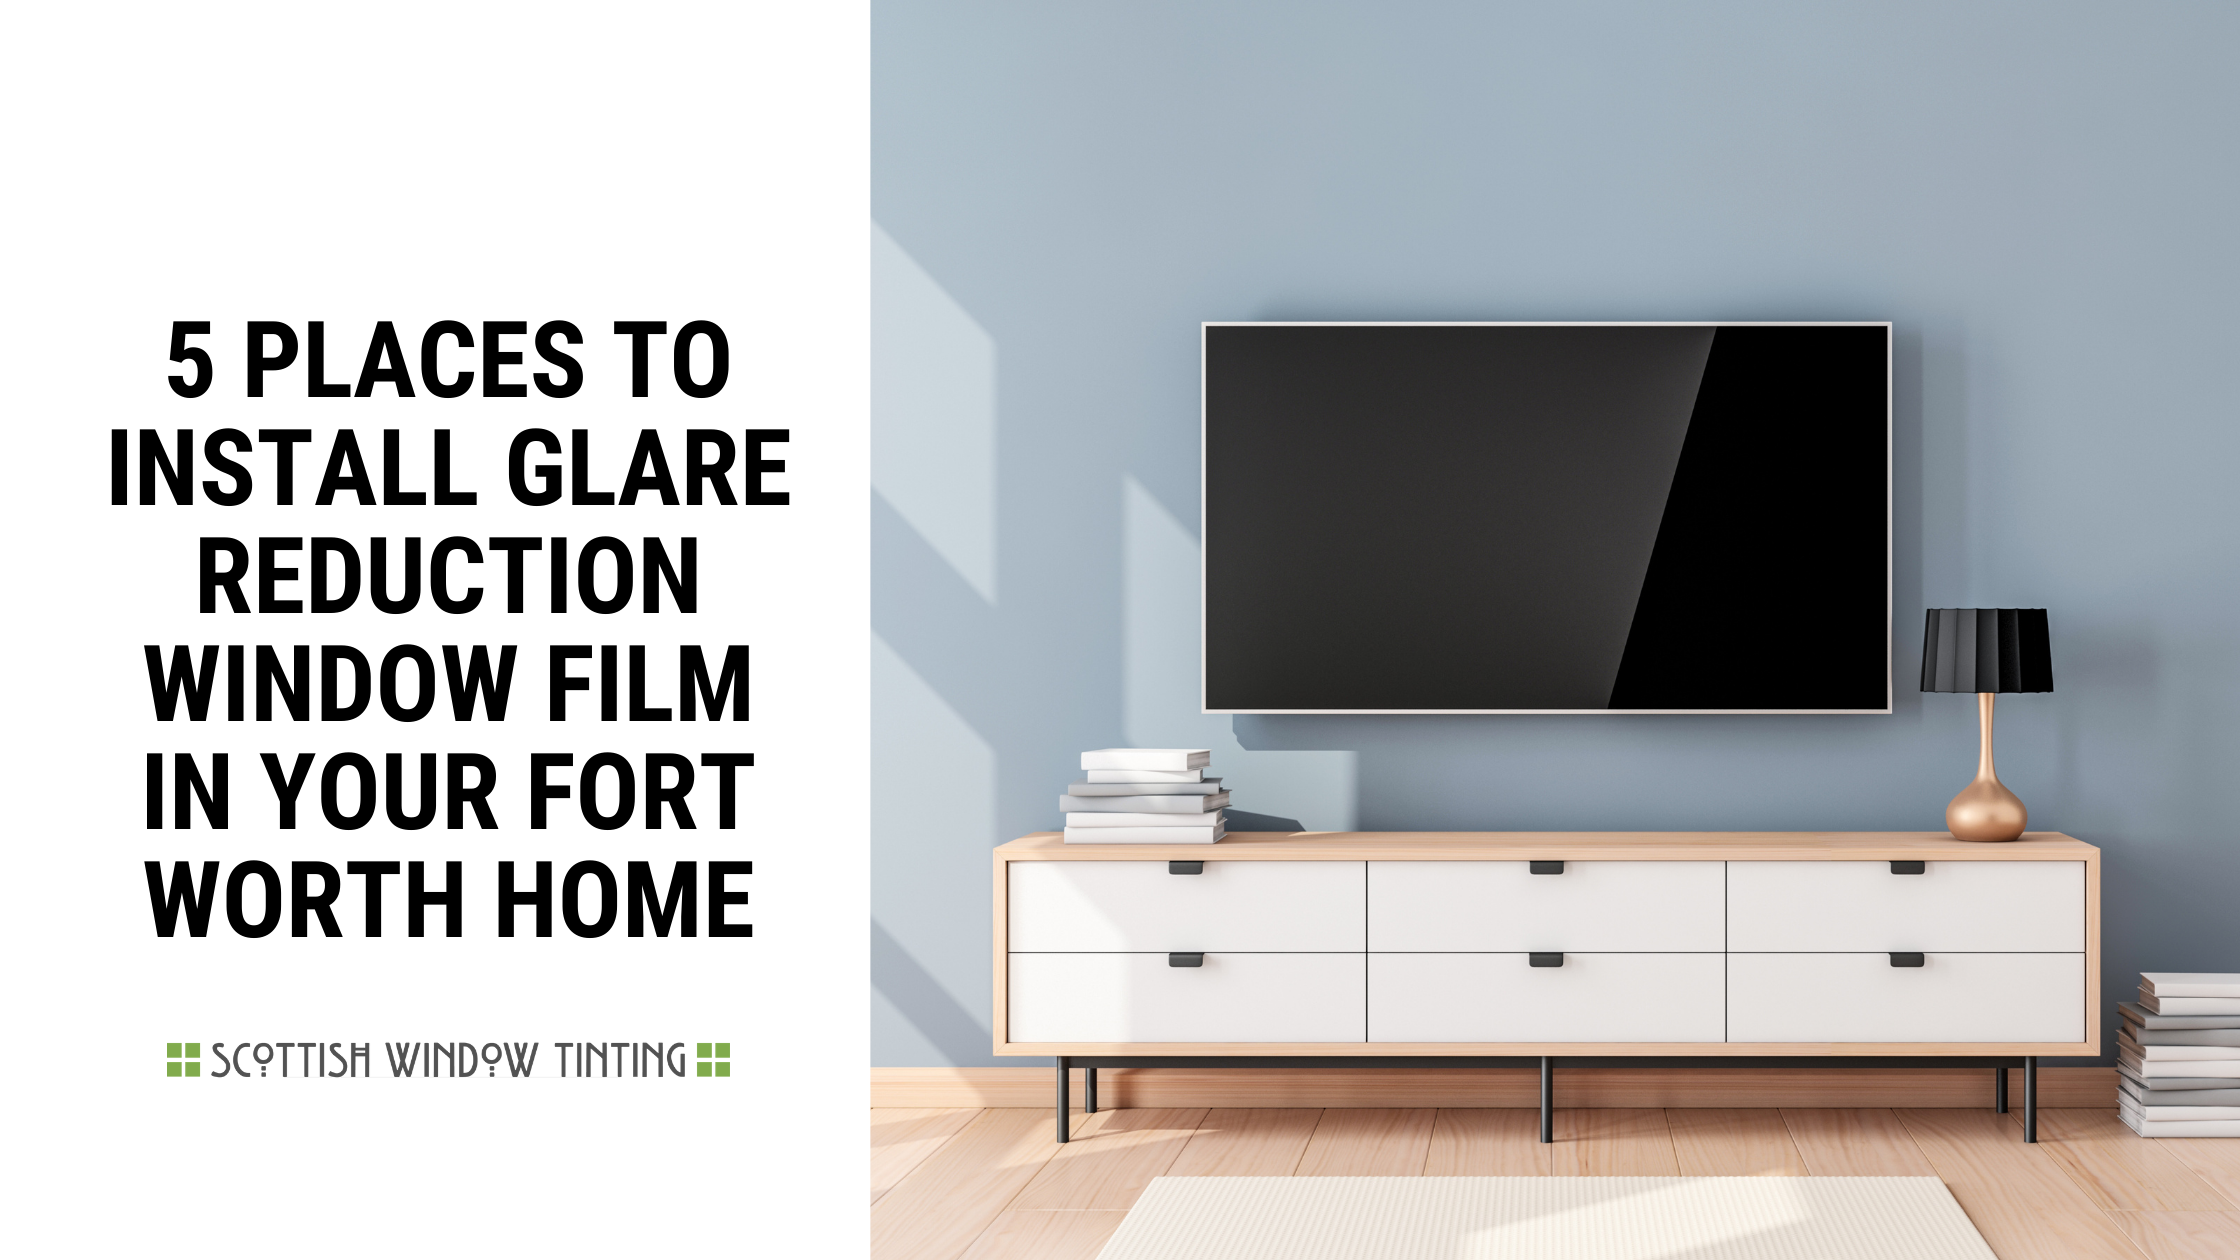 5 Places to Install Glare Reduction Window Film in Your Fort Worth Home